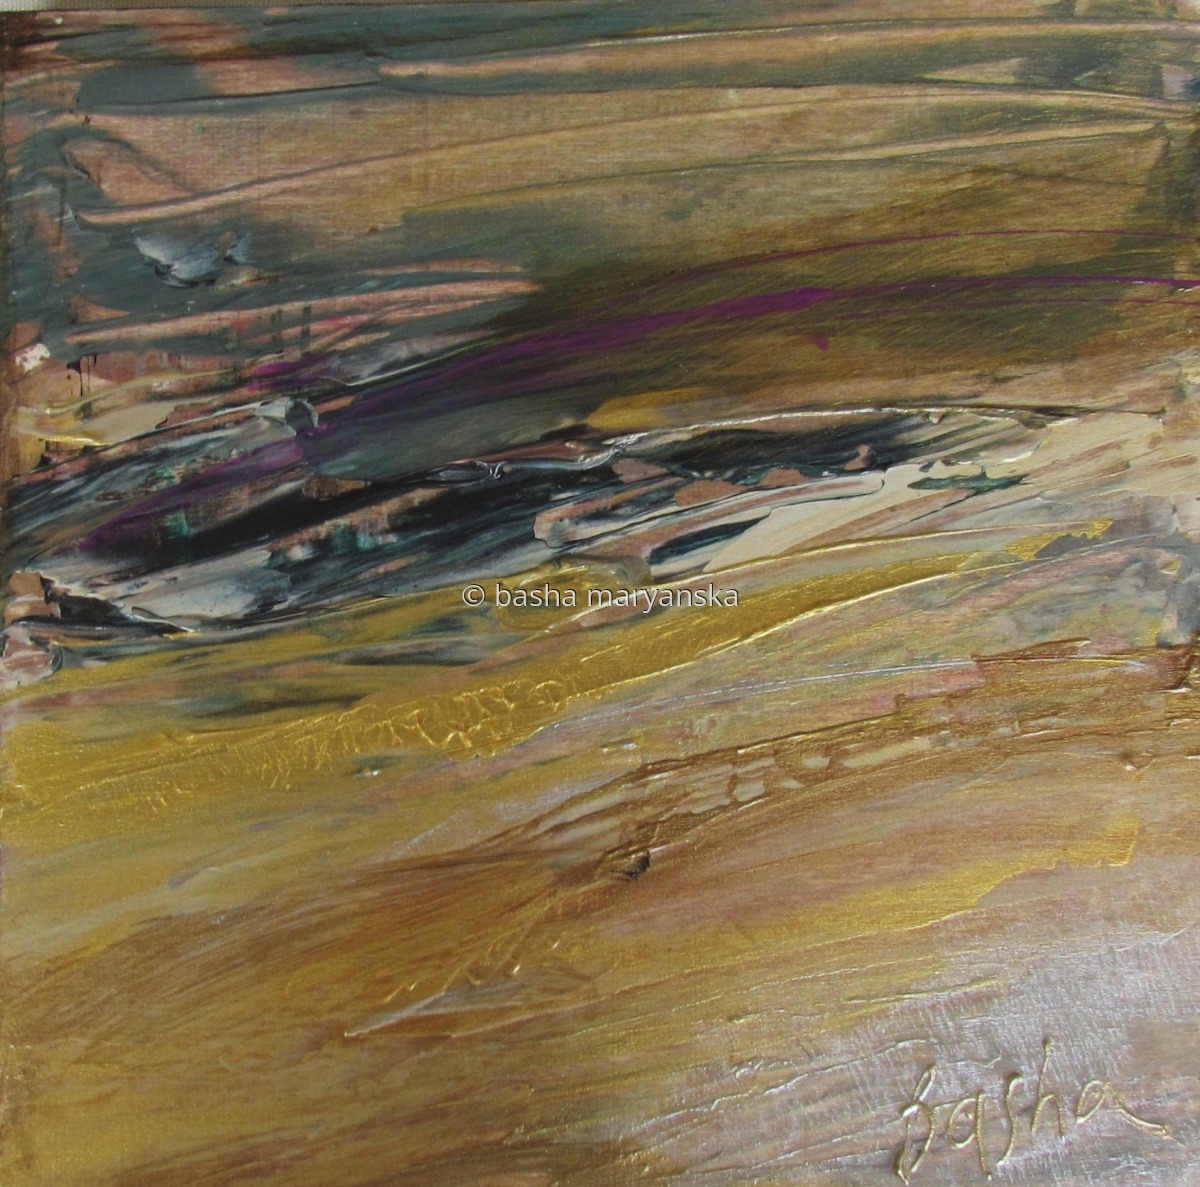 abstract landscape (large view)